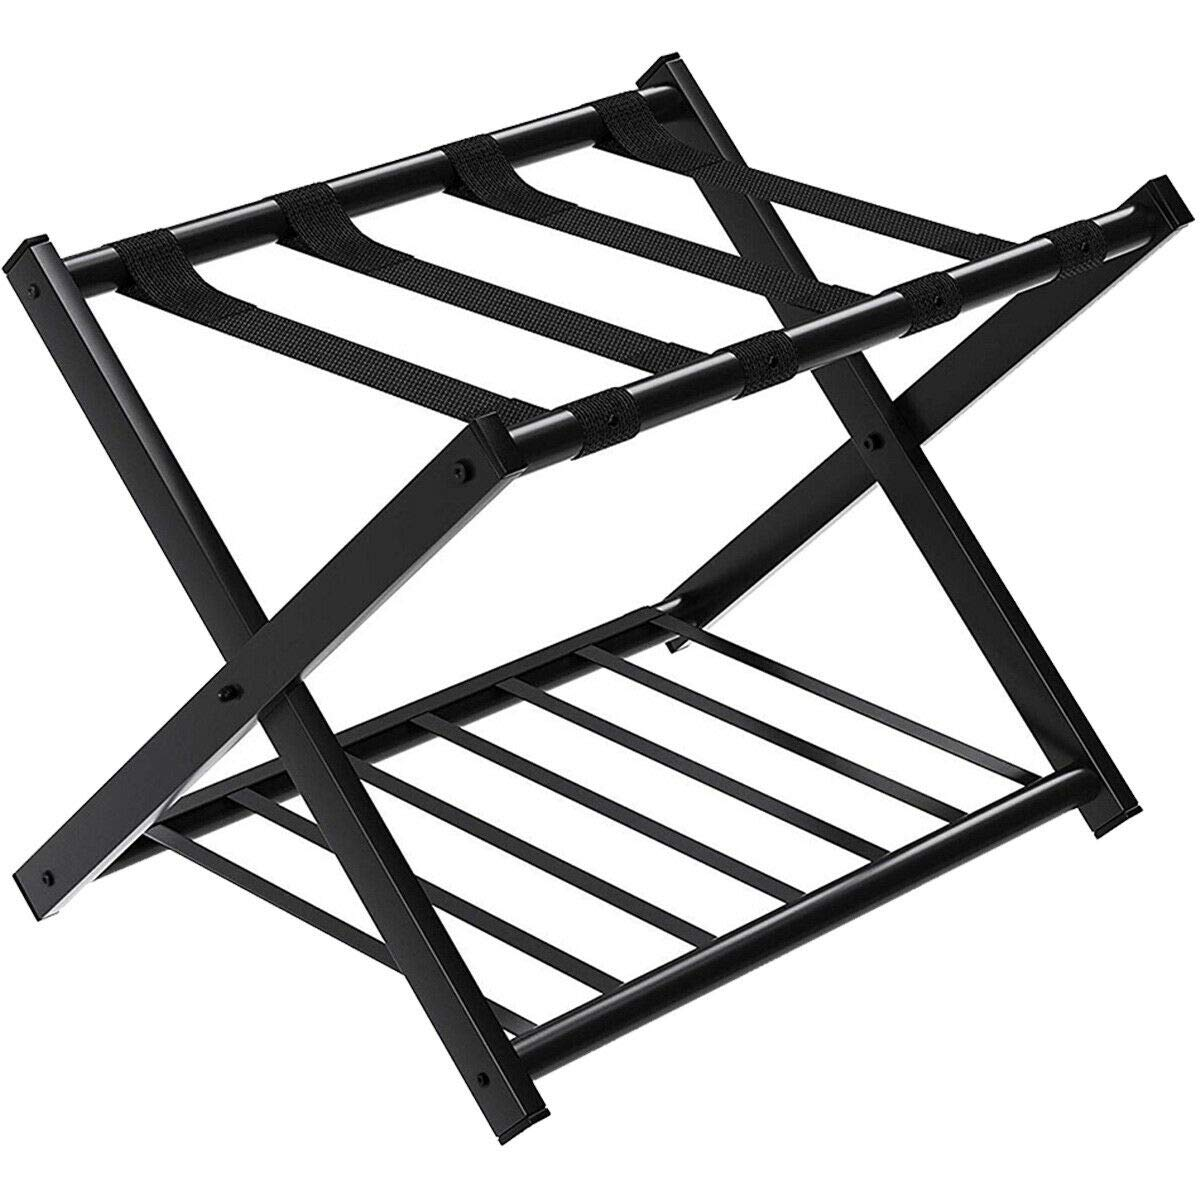 Top 10 Best Luggage Racks in 2020 Reviews & Buyers Guide